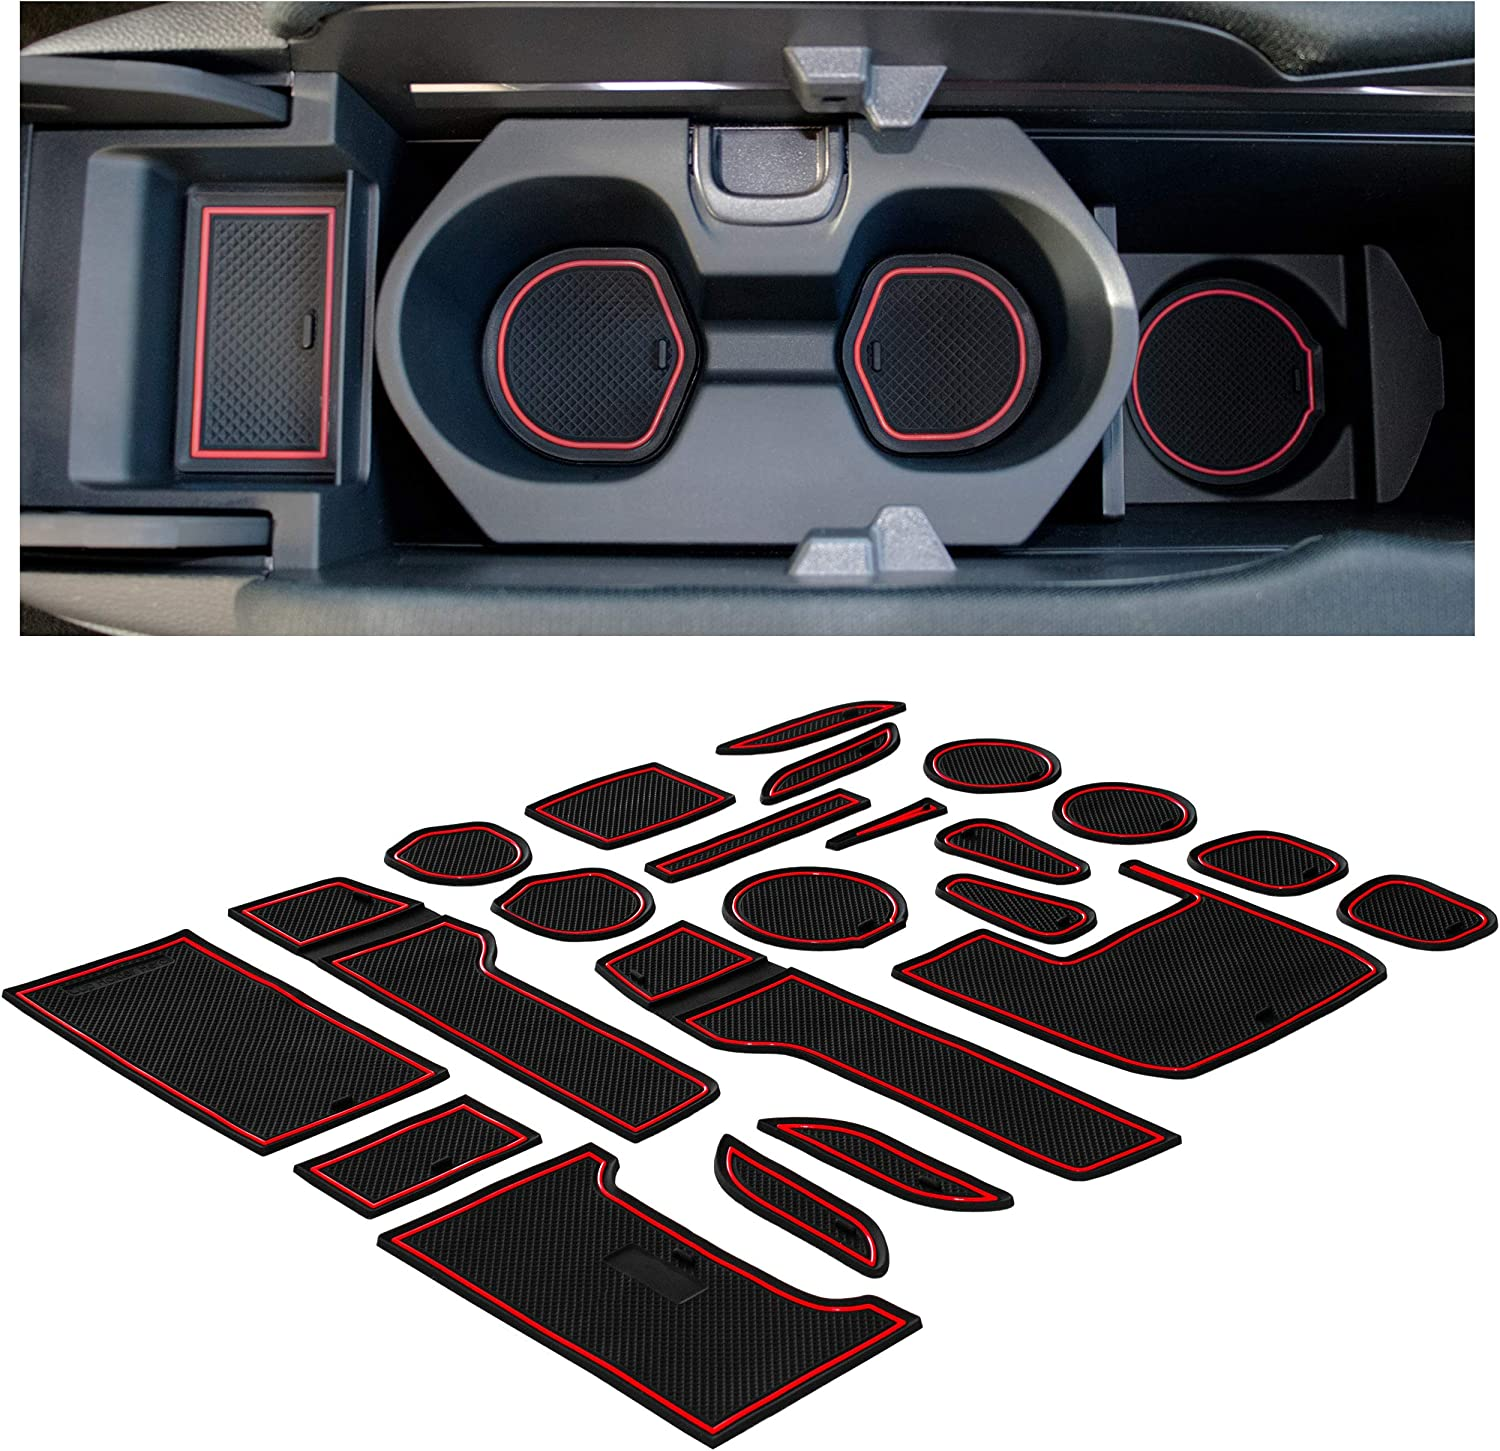 Hatchback CupHolderHero for Honda Civic Accessories 2016-2020 Premium Custom Interior Non-Slip Anti Dust Cup Holder Inserts Door Pocket Liners 21-pc Set Center Console Liner Mats Red Trim